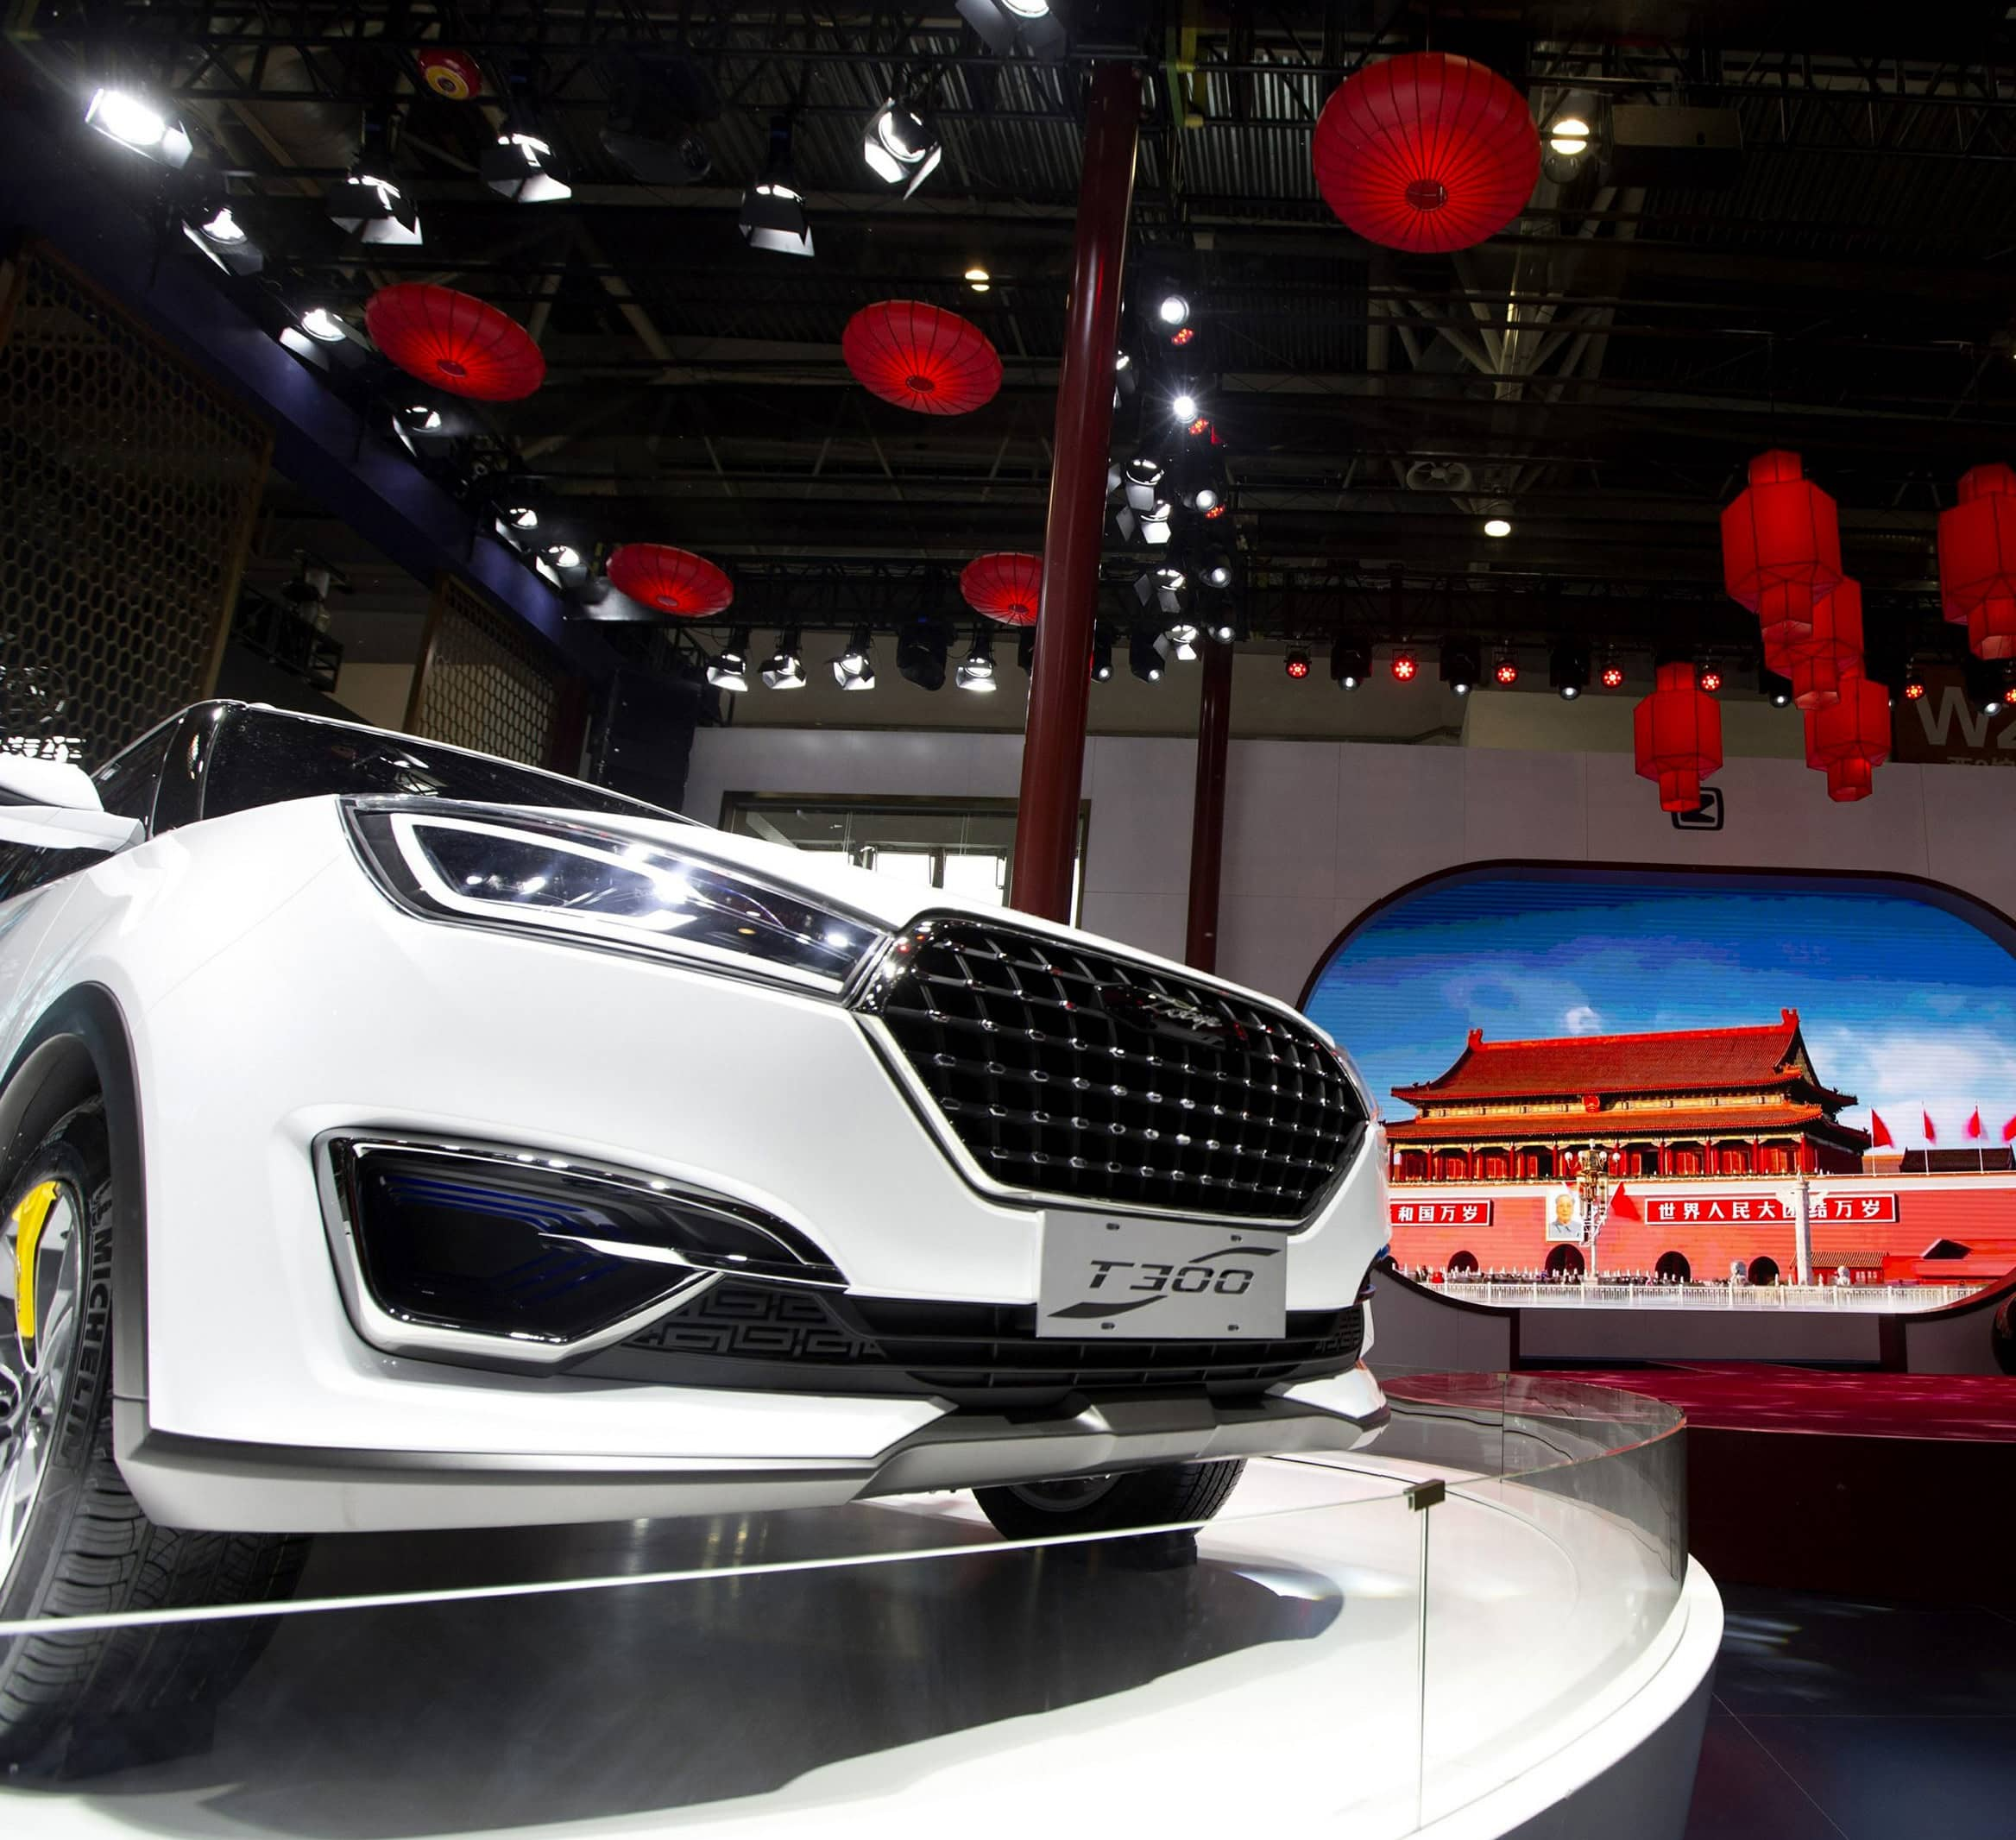 California Company Plans to Sell China-Designed Suvs in US